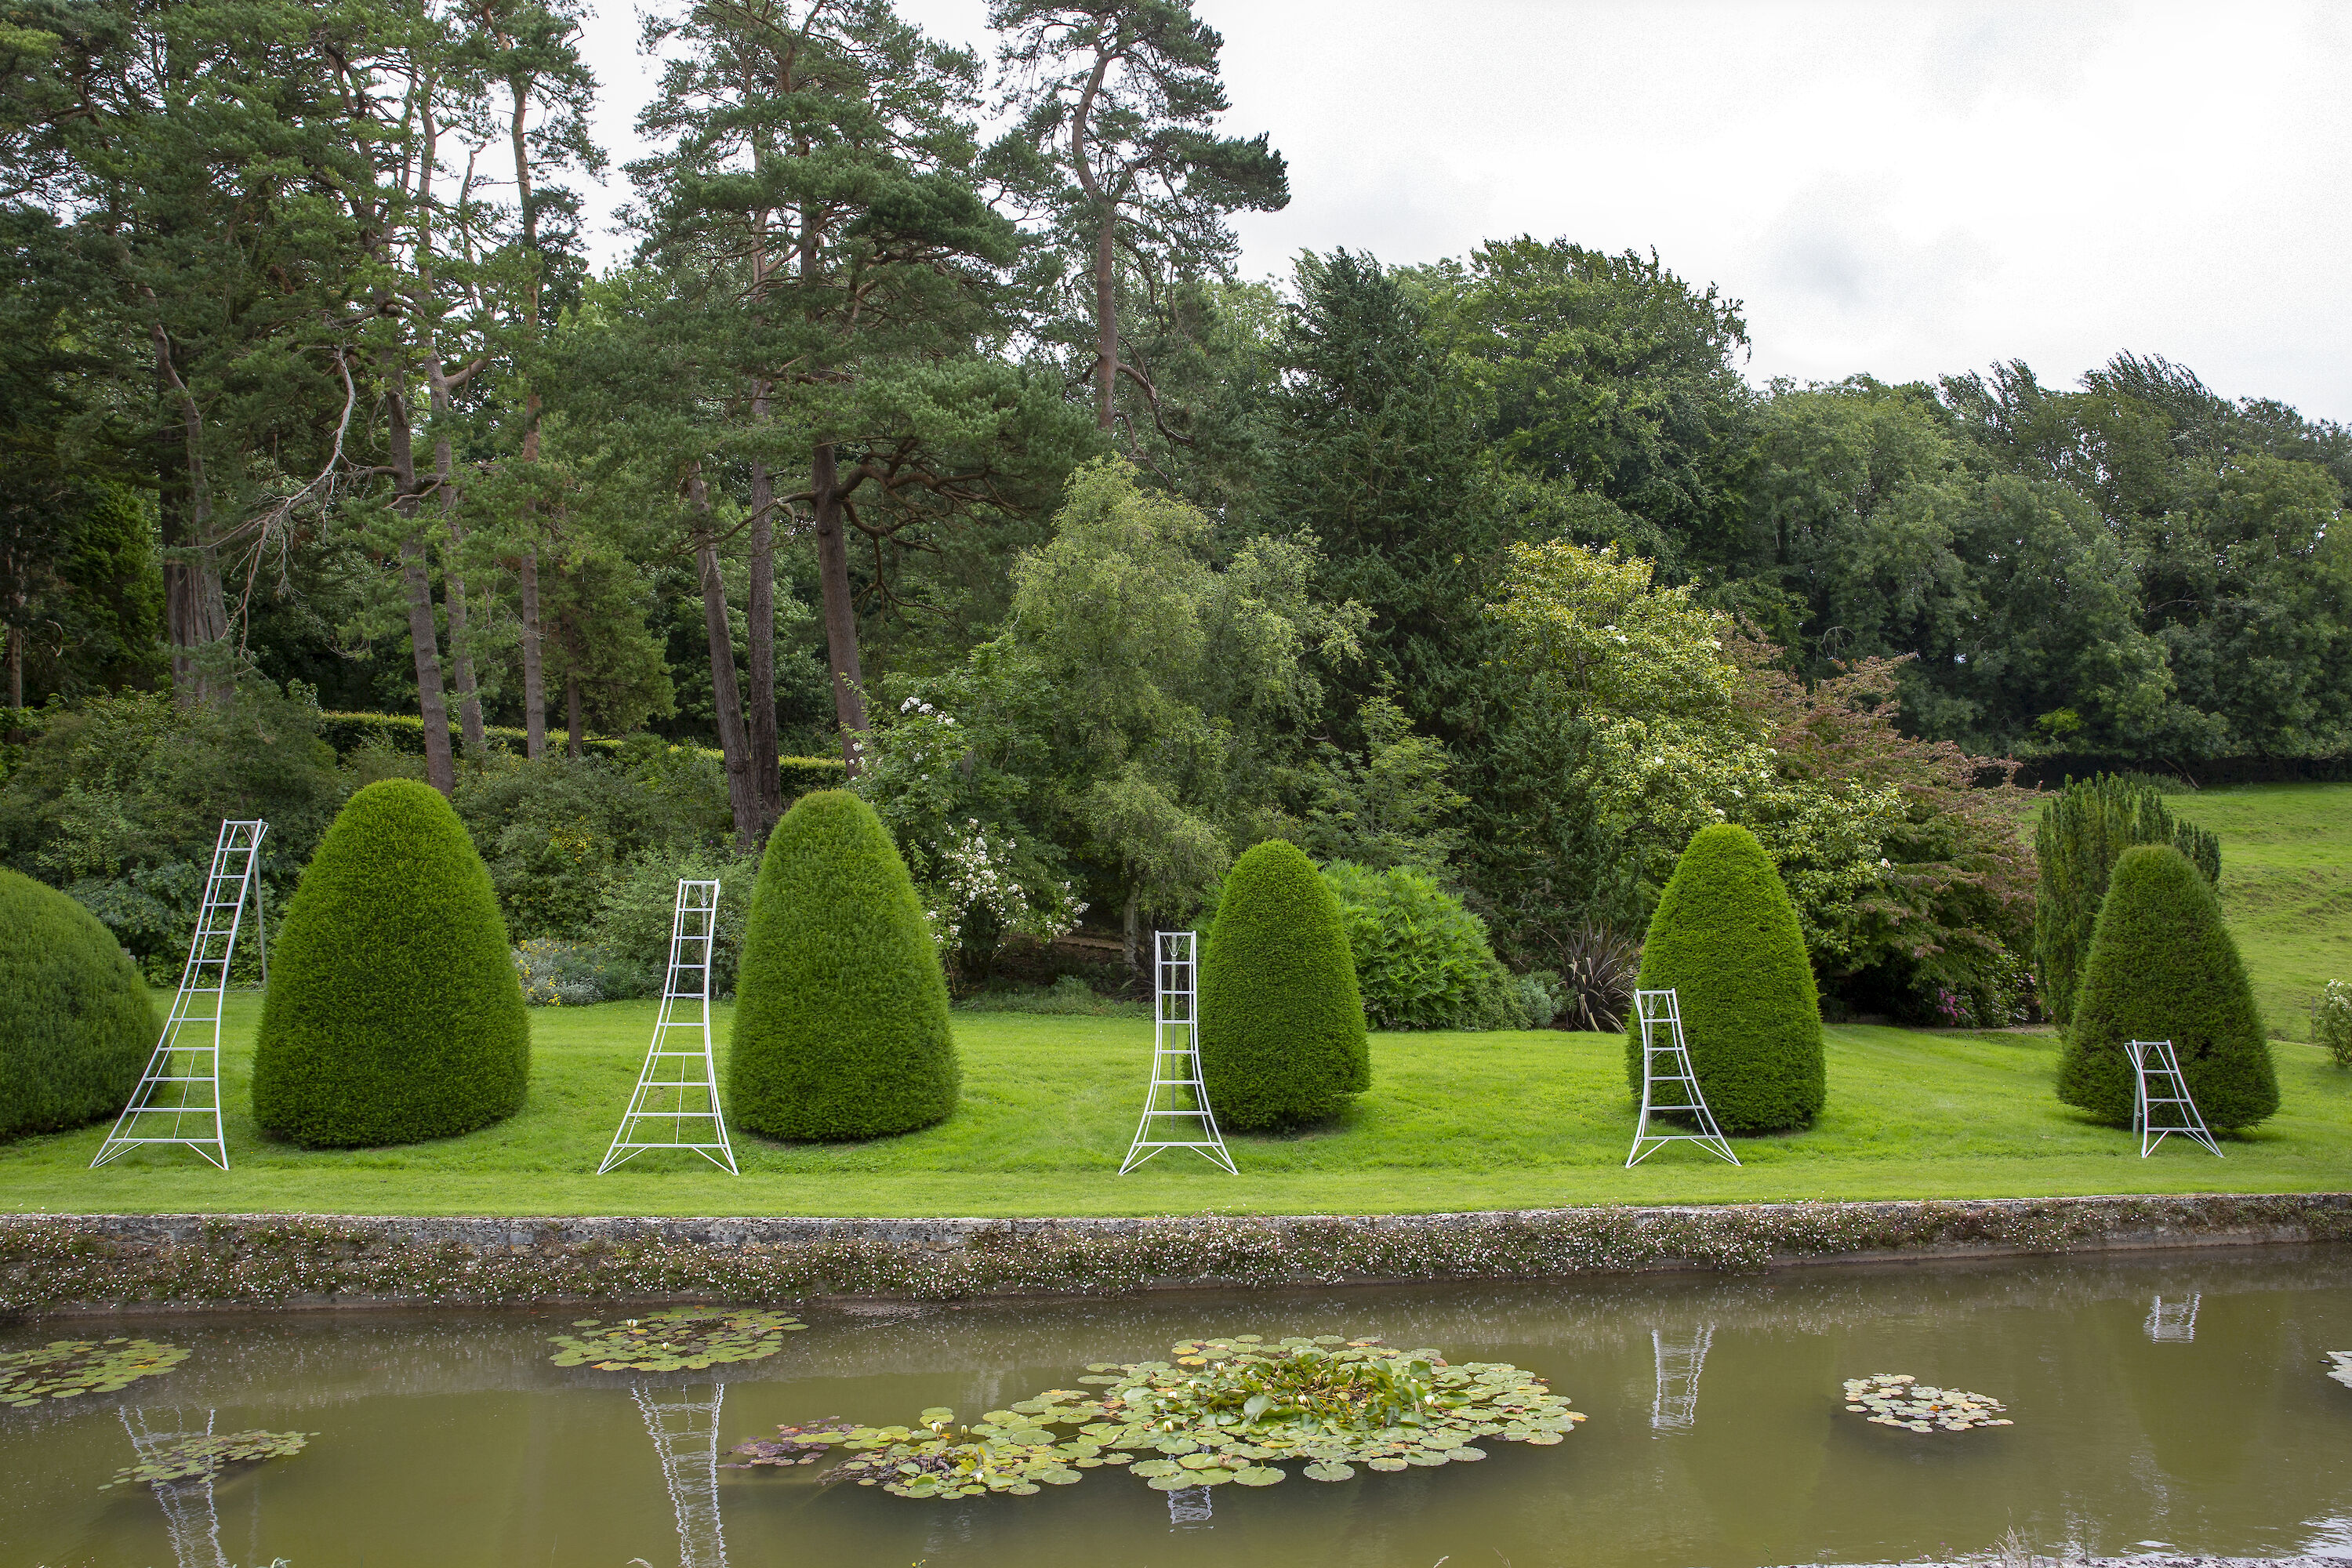 Niwaki Tripod Ladders at Mapperton House